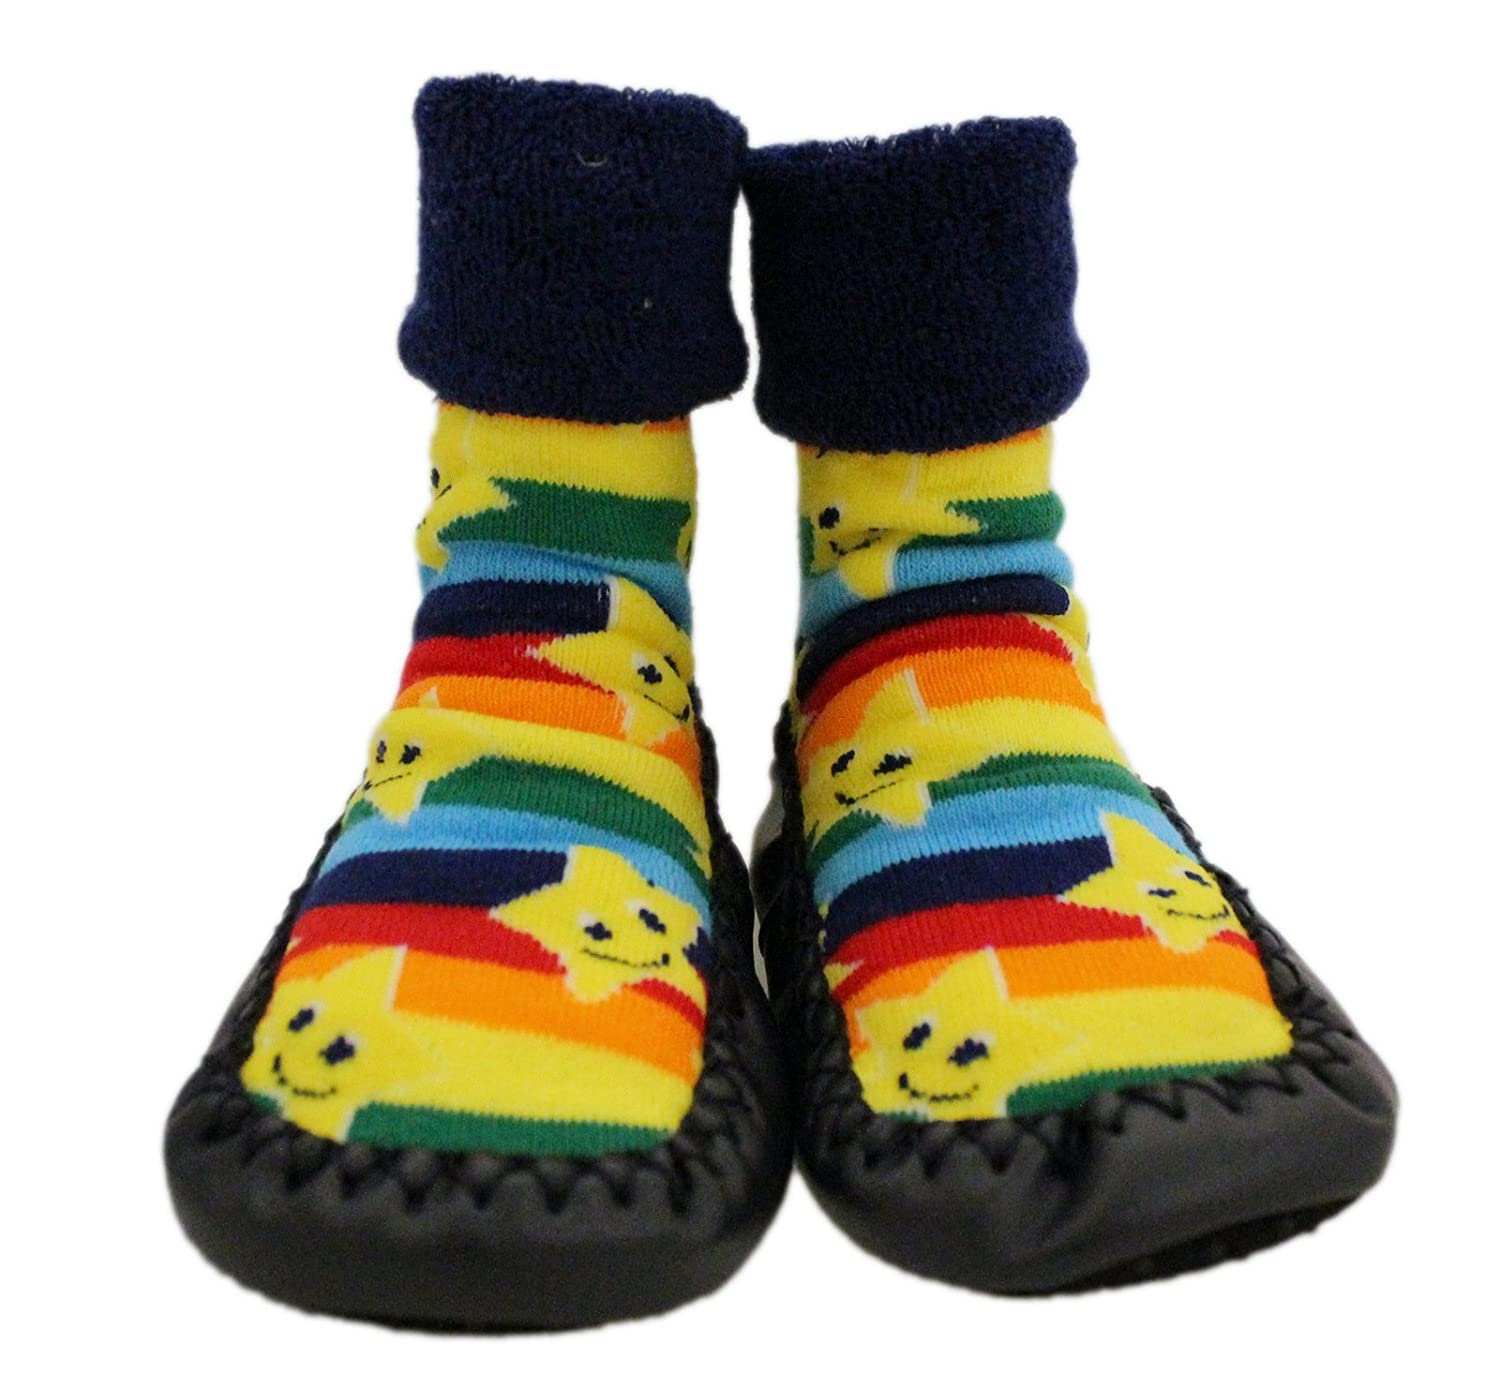 Amazon.com: Baby Rainbow Stars Thick Winter Anti-slip Shoes Socks Moccasins Age 1 2 3 …: Clothing